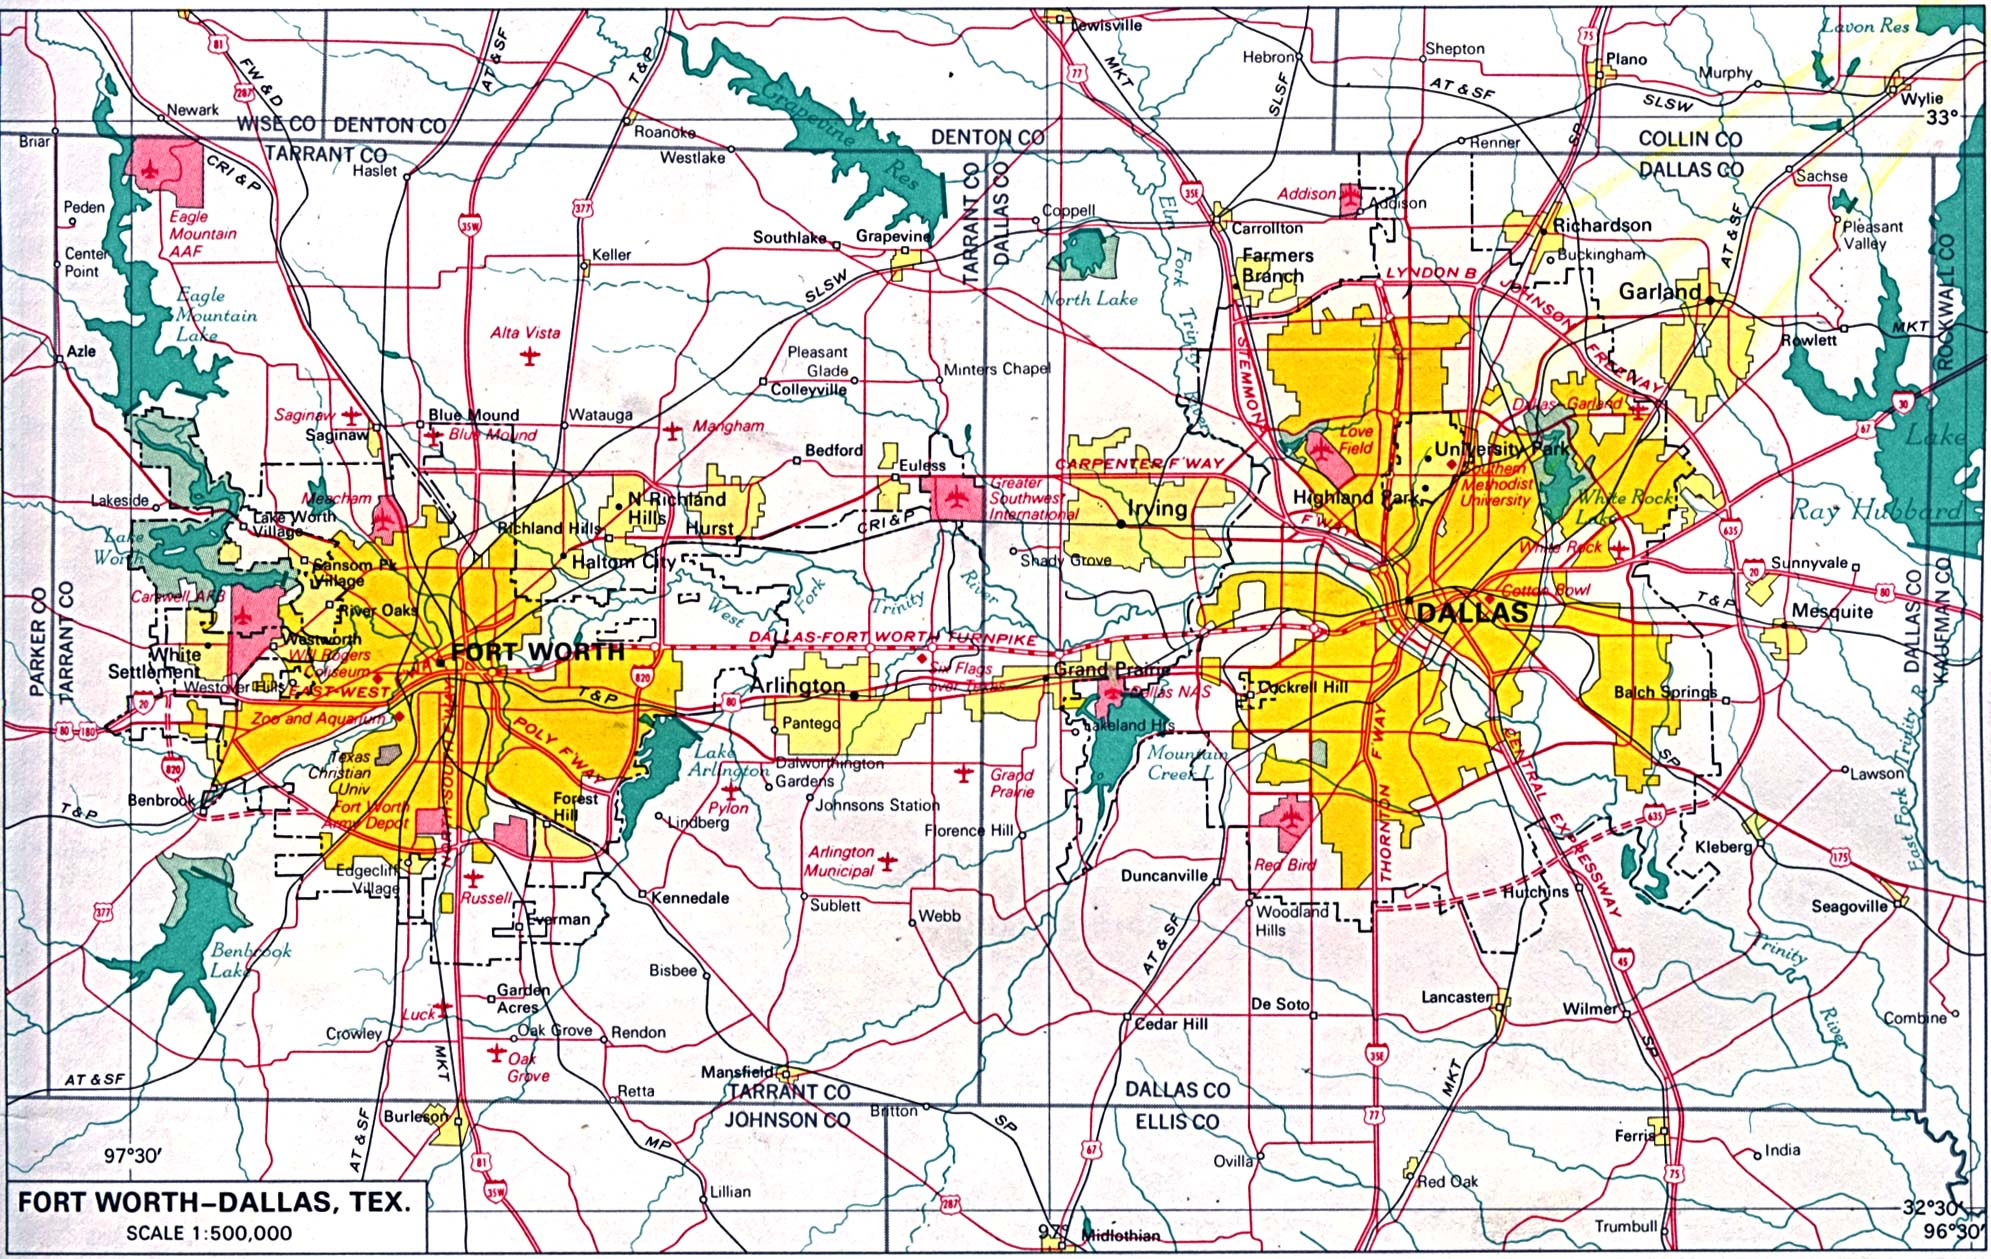 Maps of U.S. Metropolitan Areas. Dallas-Fort Worth, Texas 1970 (666K)